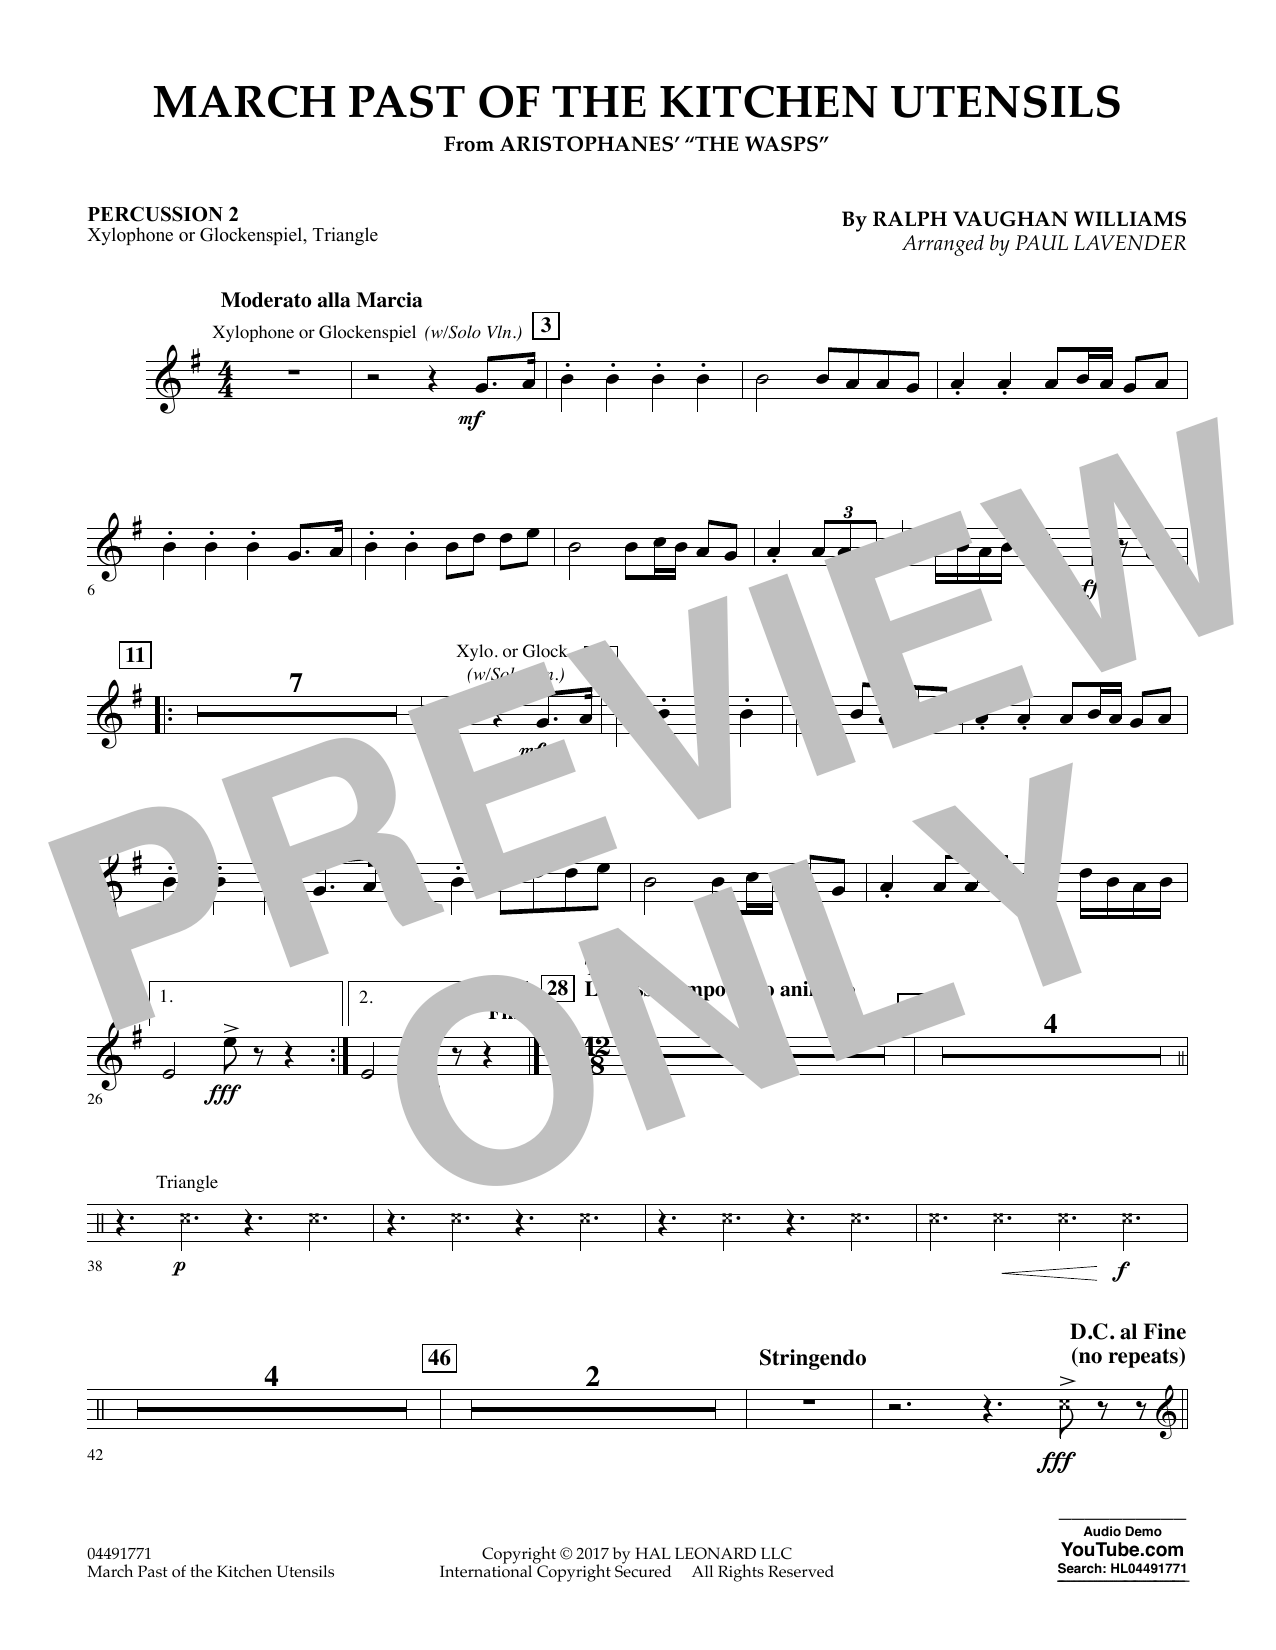 Paul Lavender March Past of the Kitchen Utensils (from The Wasps) - Percussion 2 sheet music notes and chords. Download Printable PDF.